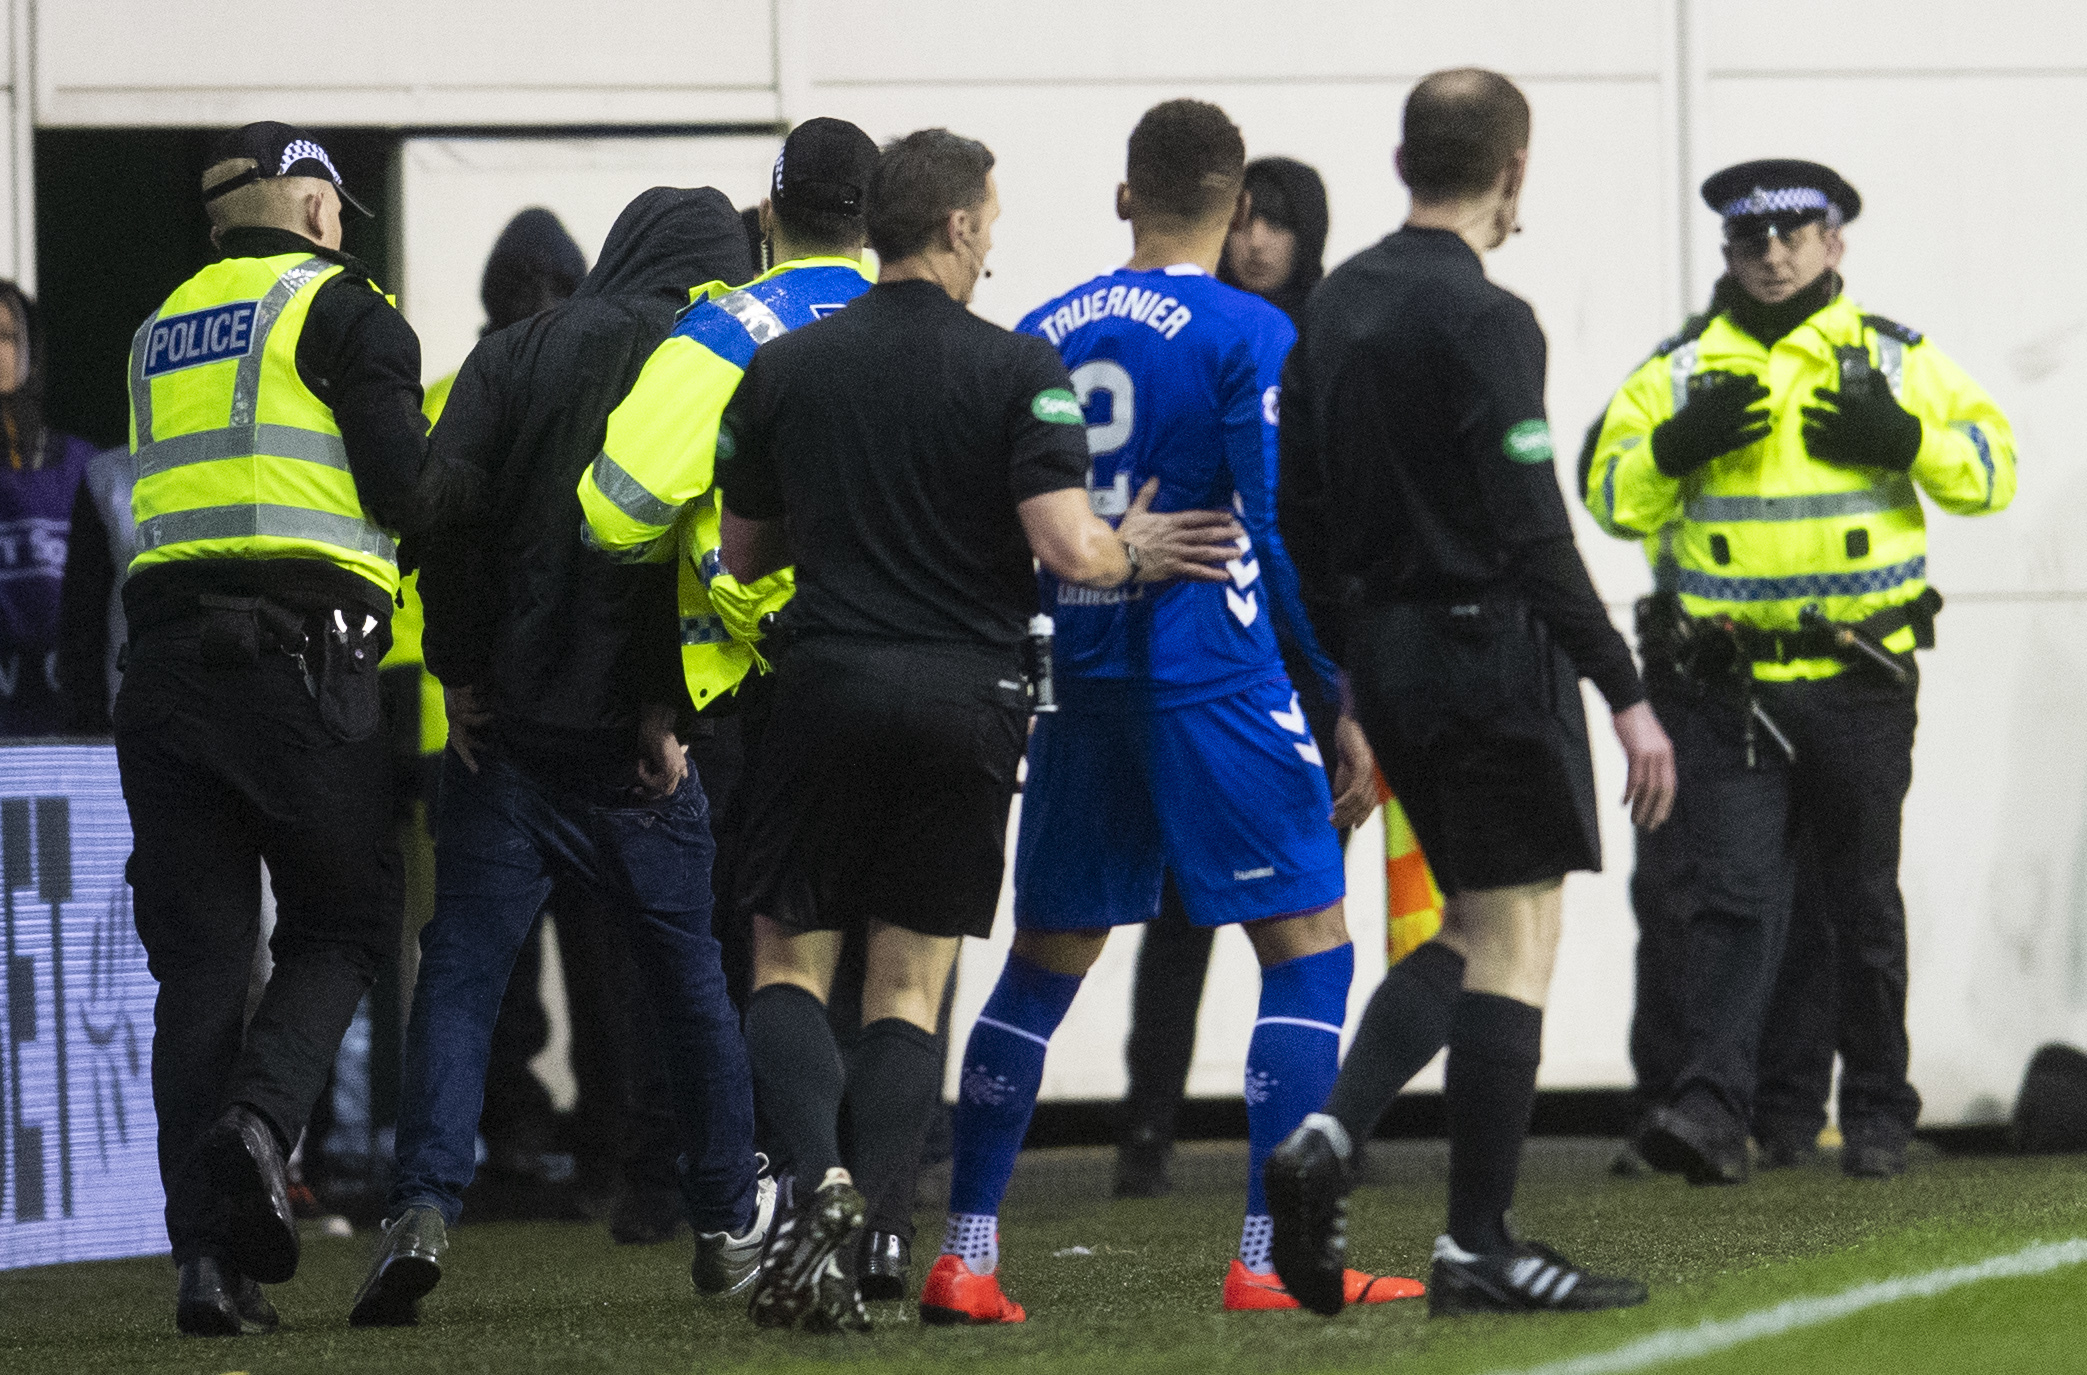 A fan is lead away by the police after an altercation with Rangers captain James Tavernier